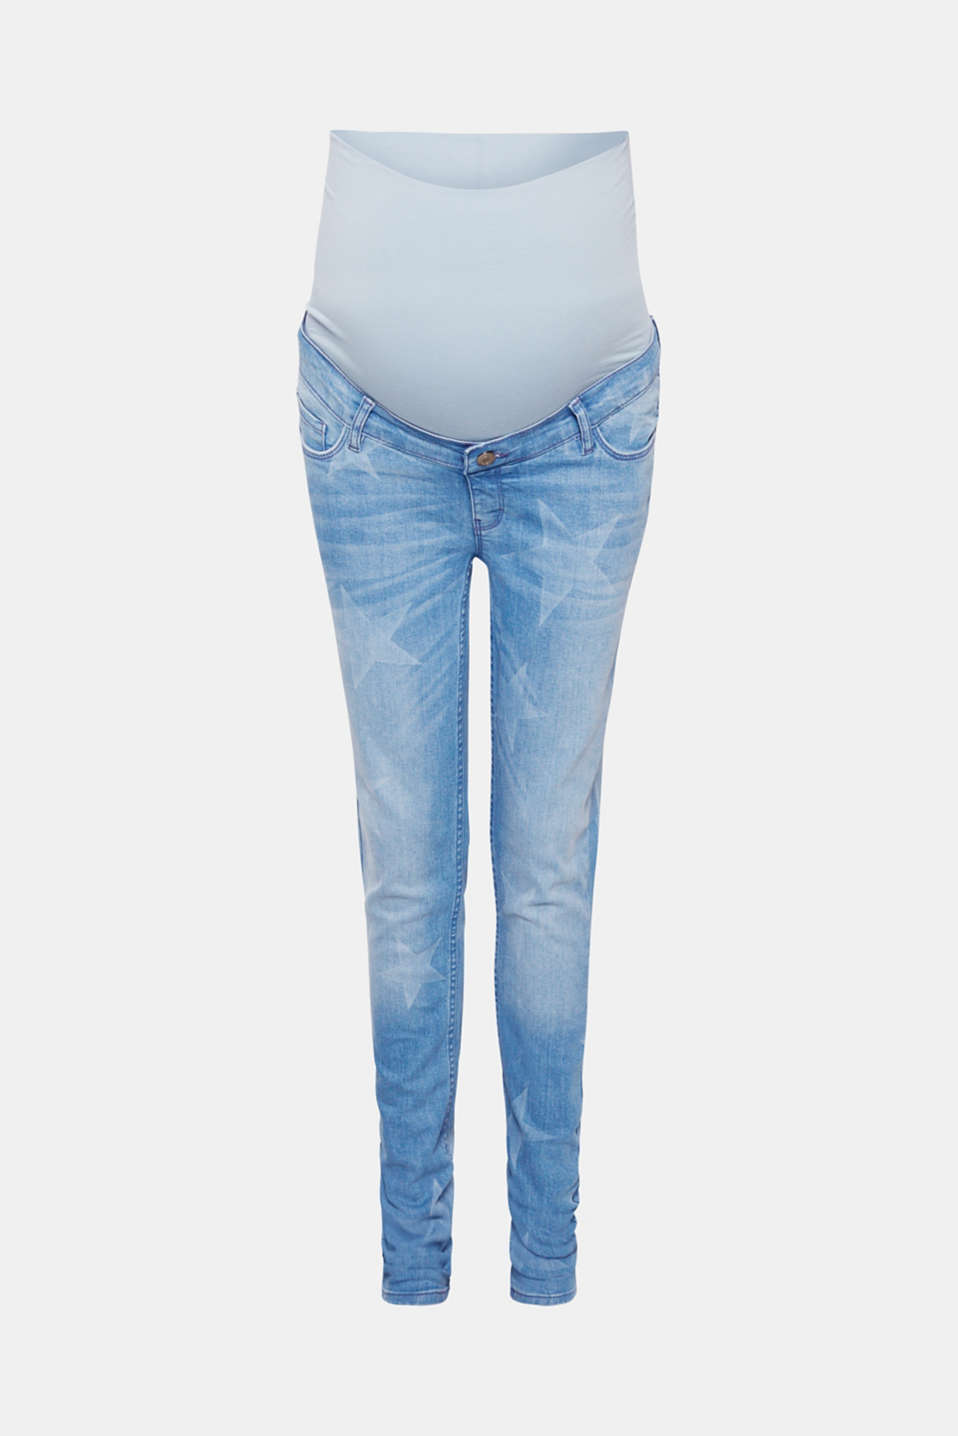 Esprit - Jeans with stars, over-bump waistband